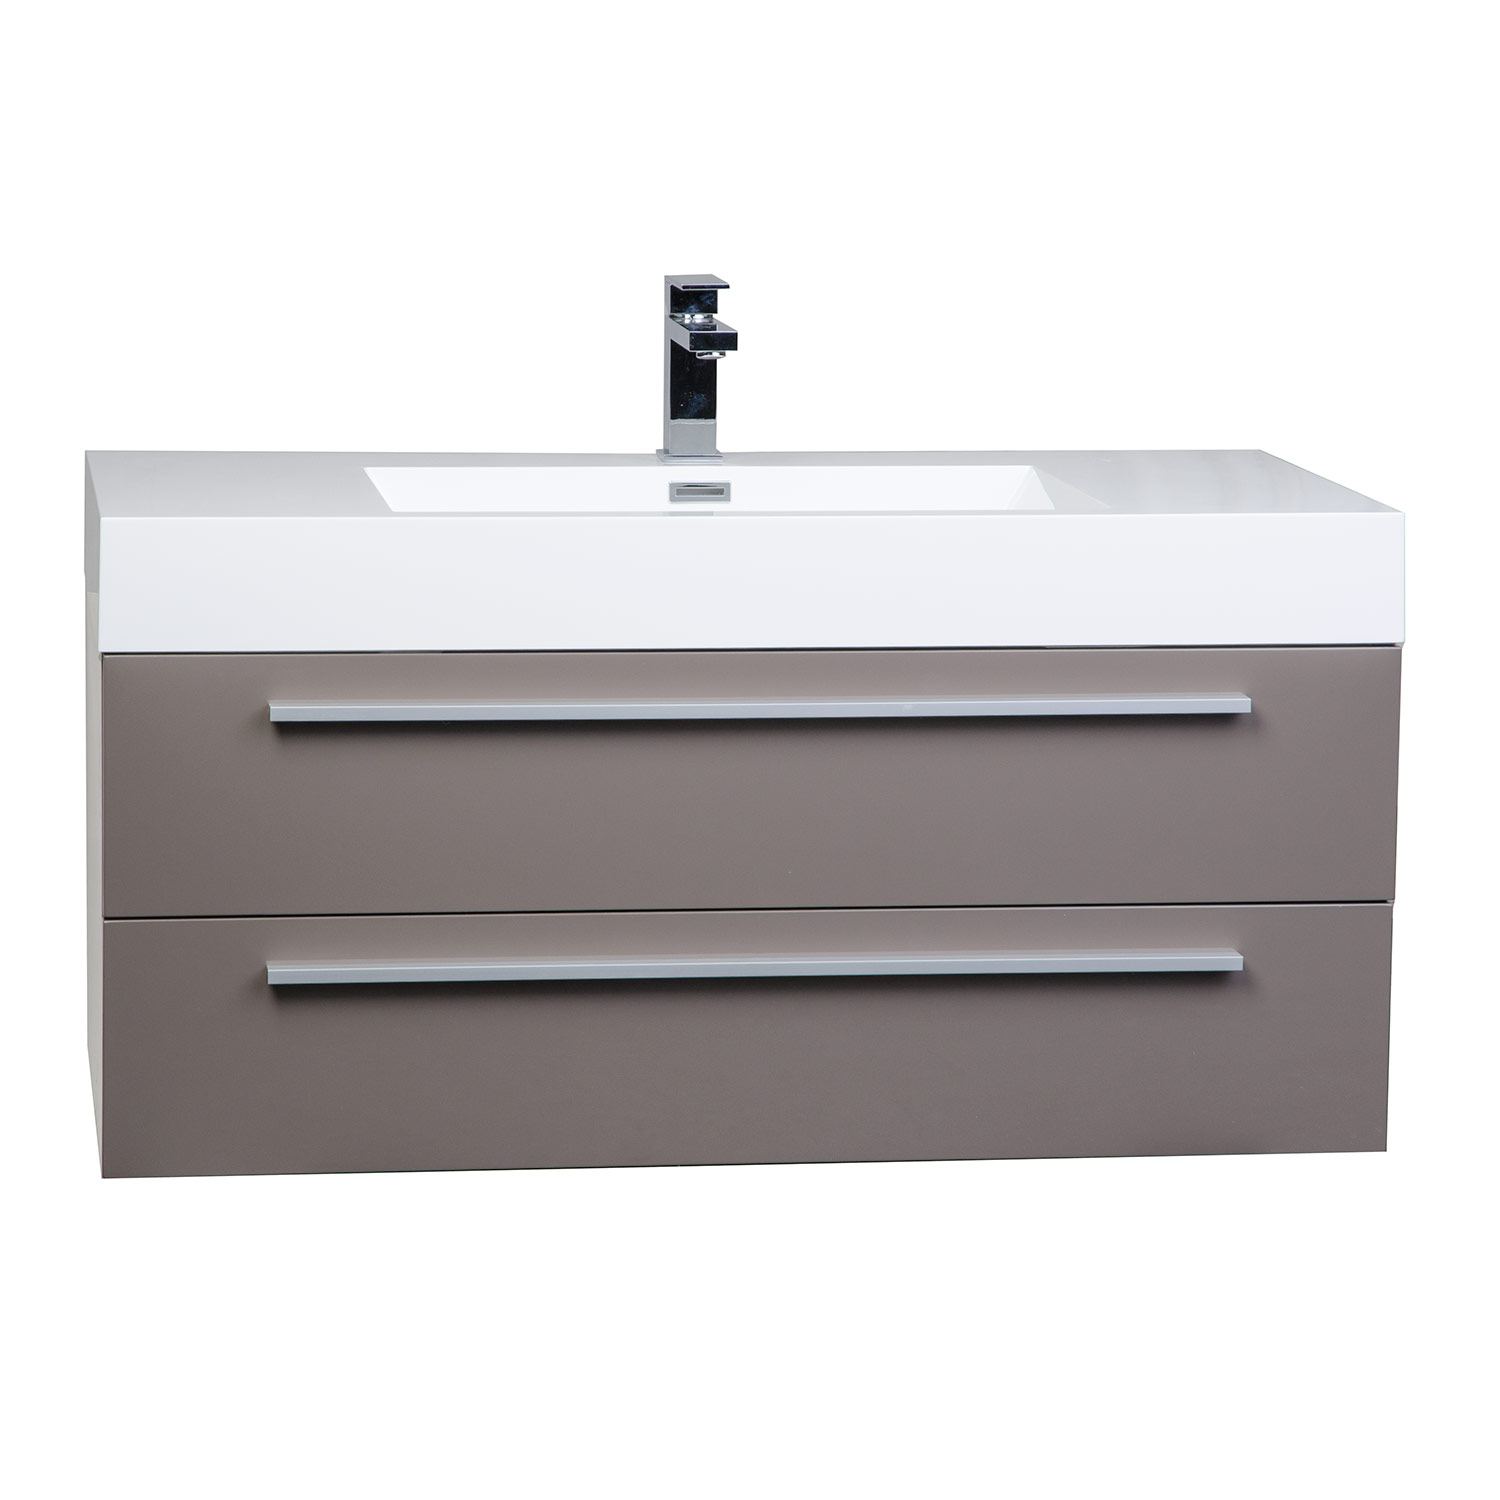 3925 wall mount contemporary bathroom vanity high gloss iron grey tn t1000 hgbg